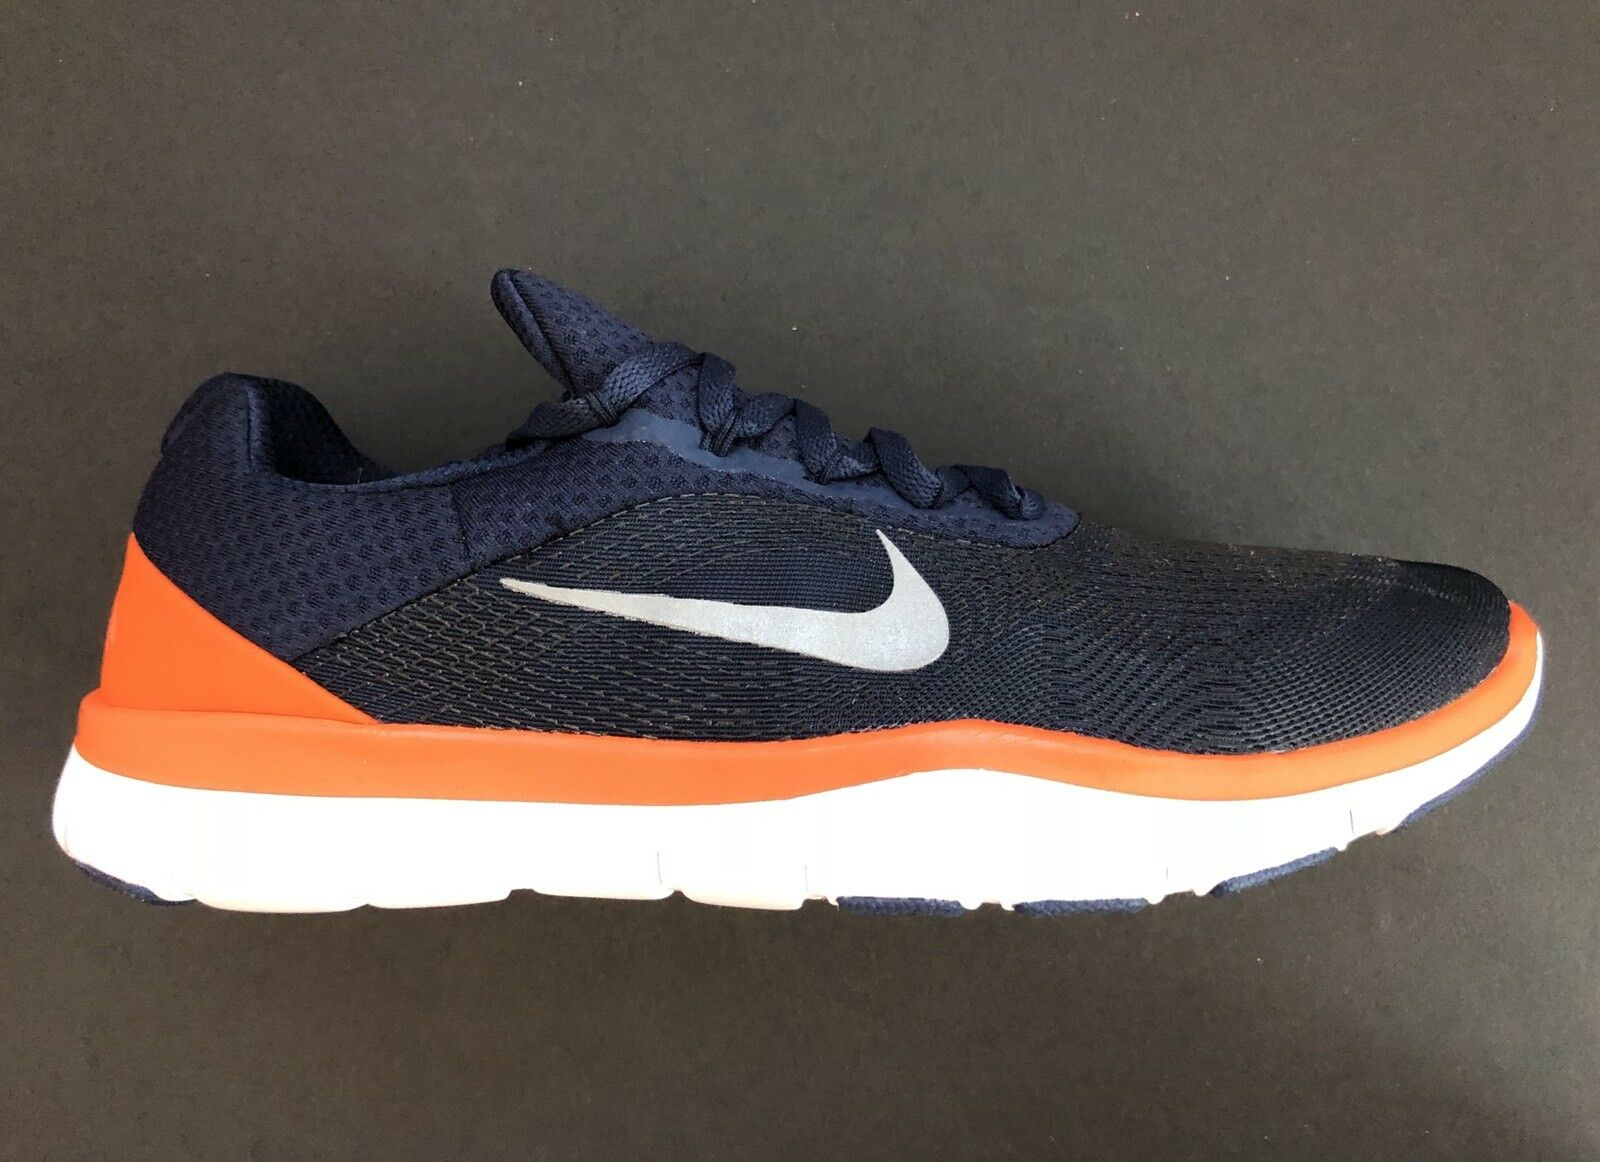 Nike Denver Broncos Free Trainer V7 Ltd Edition AA1948-401 shoes Size Men's 14